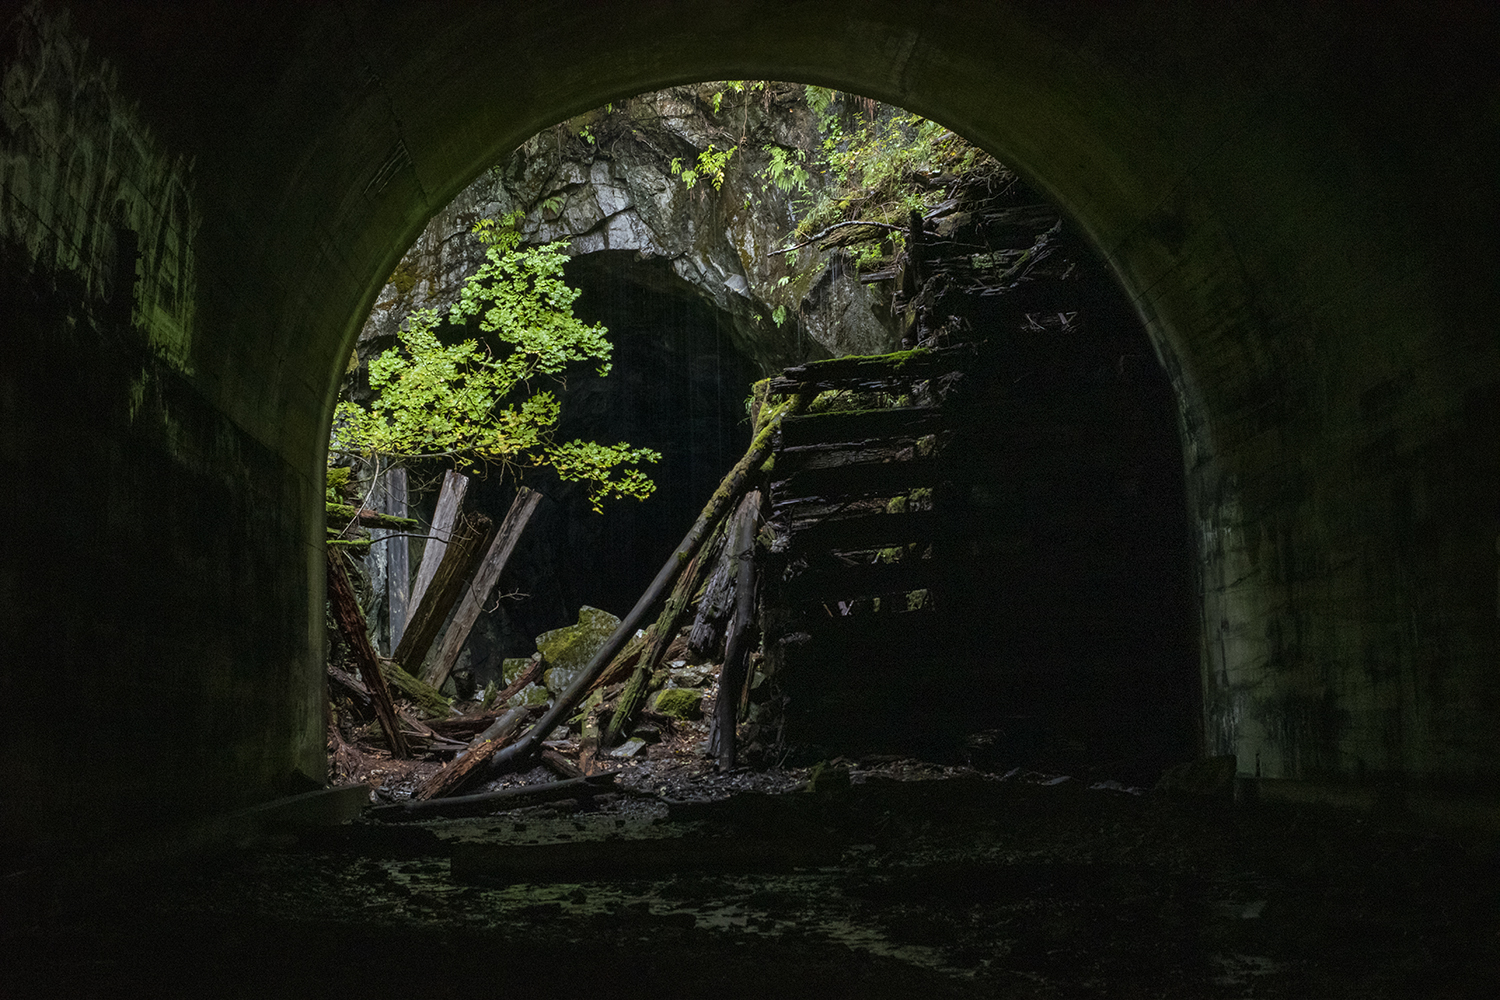 Just 75 feet apart, the twin tunnels were constructed to protect trains from falling rocks, snow drifts and trees. Step inside for bit of shade or protection from the misty rains outside — a flashlight might also be handy.{ }(Image: Rachael Jones / Seattle Refined)